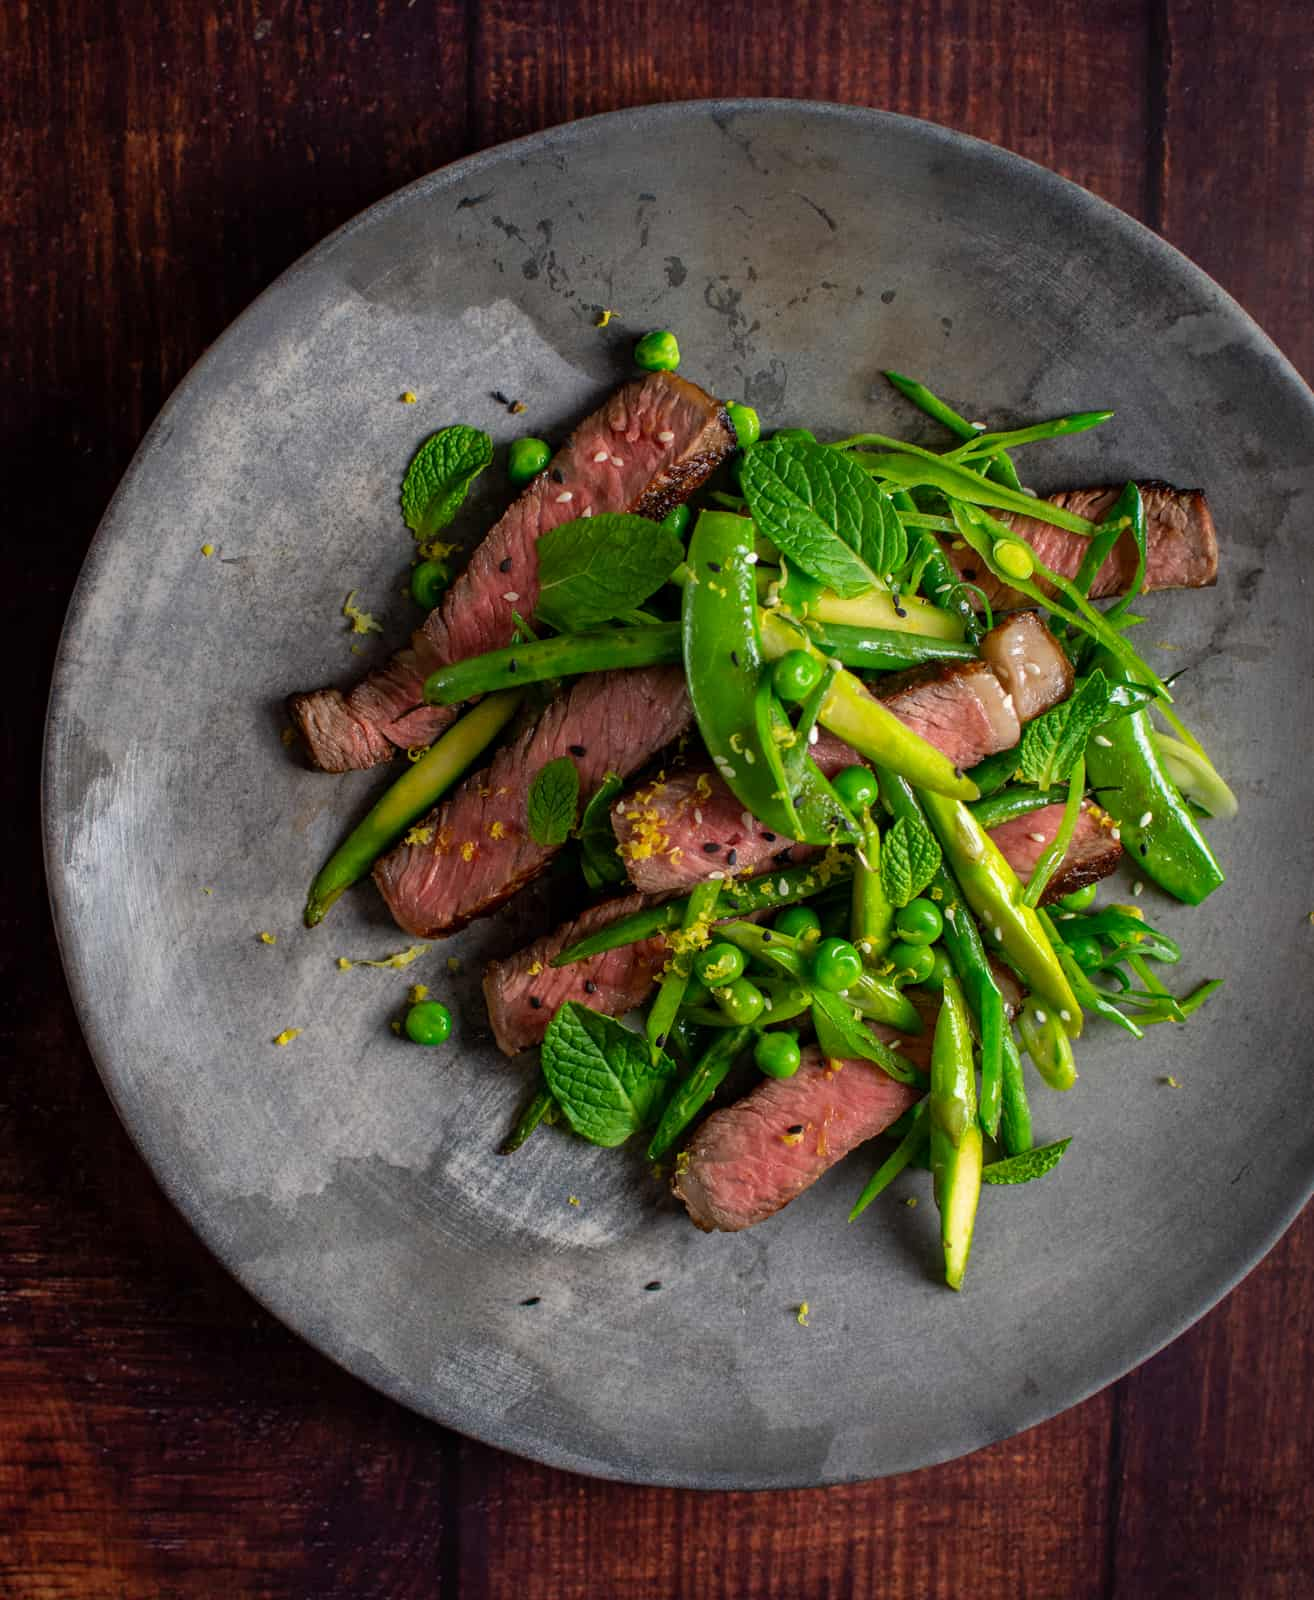 Grilled scotch steak and mixed greens salad on a plate